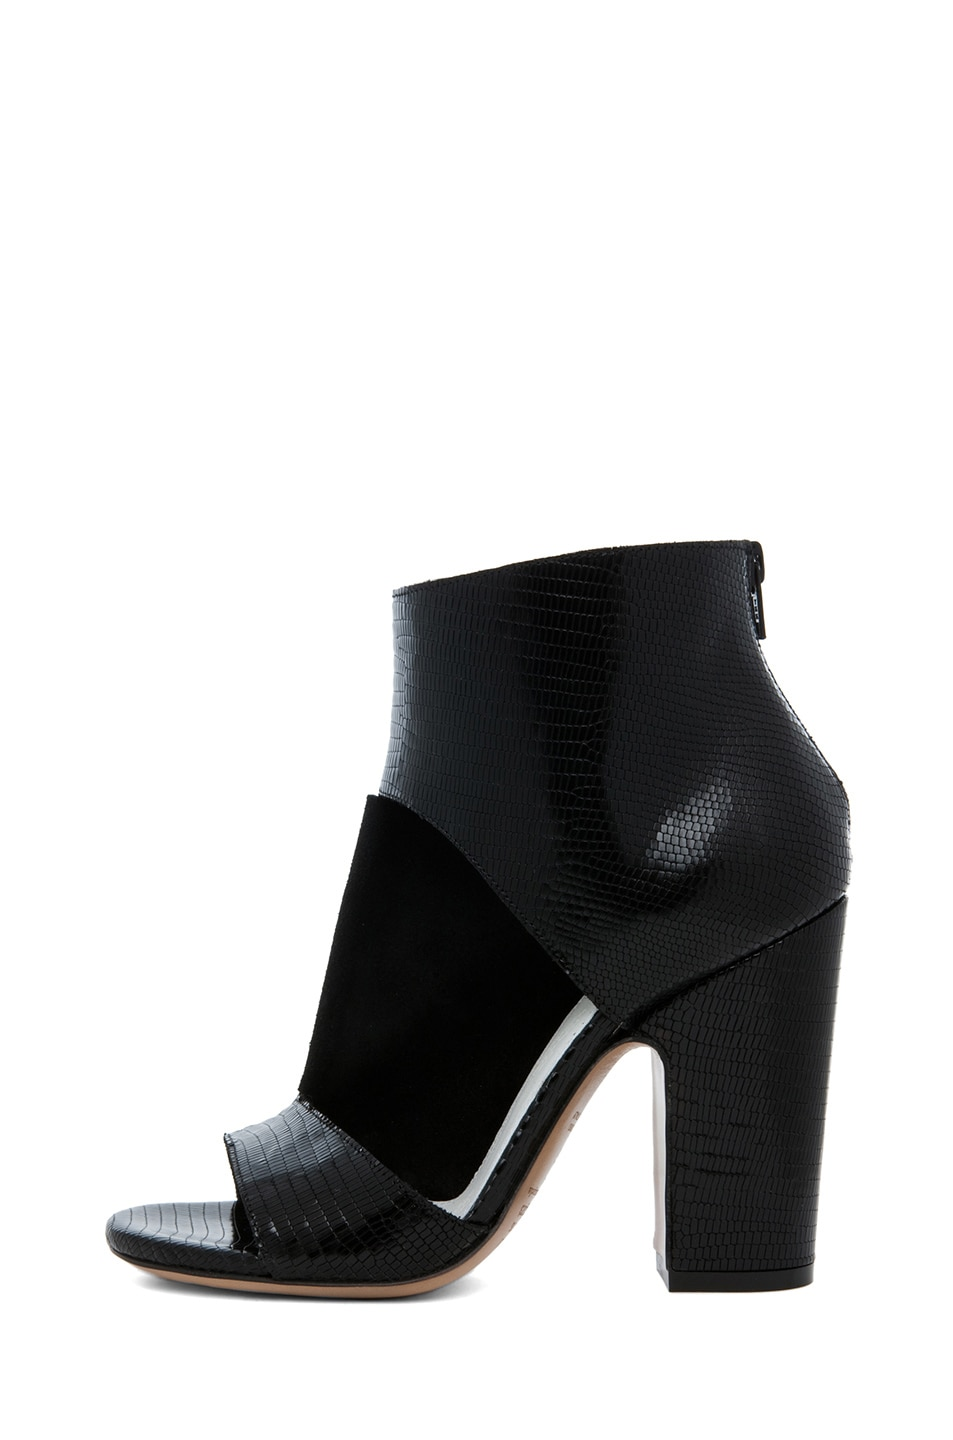 Image 1 of Maison Margiela Pliage Bootie in Black